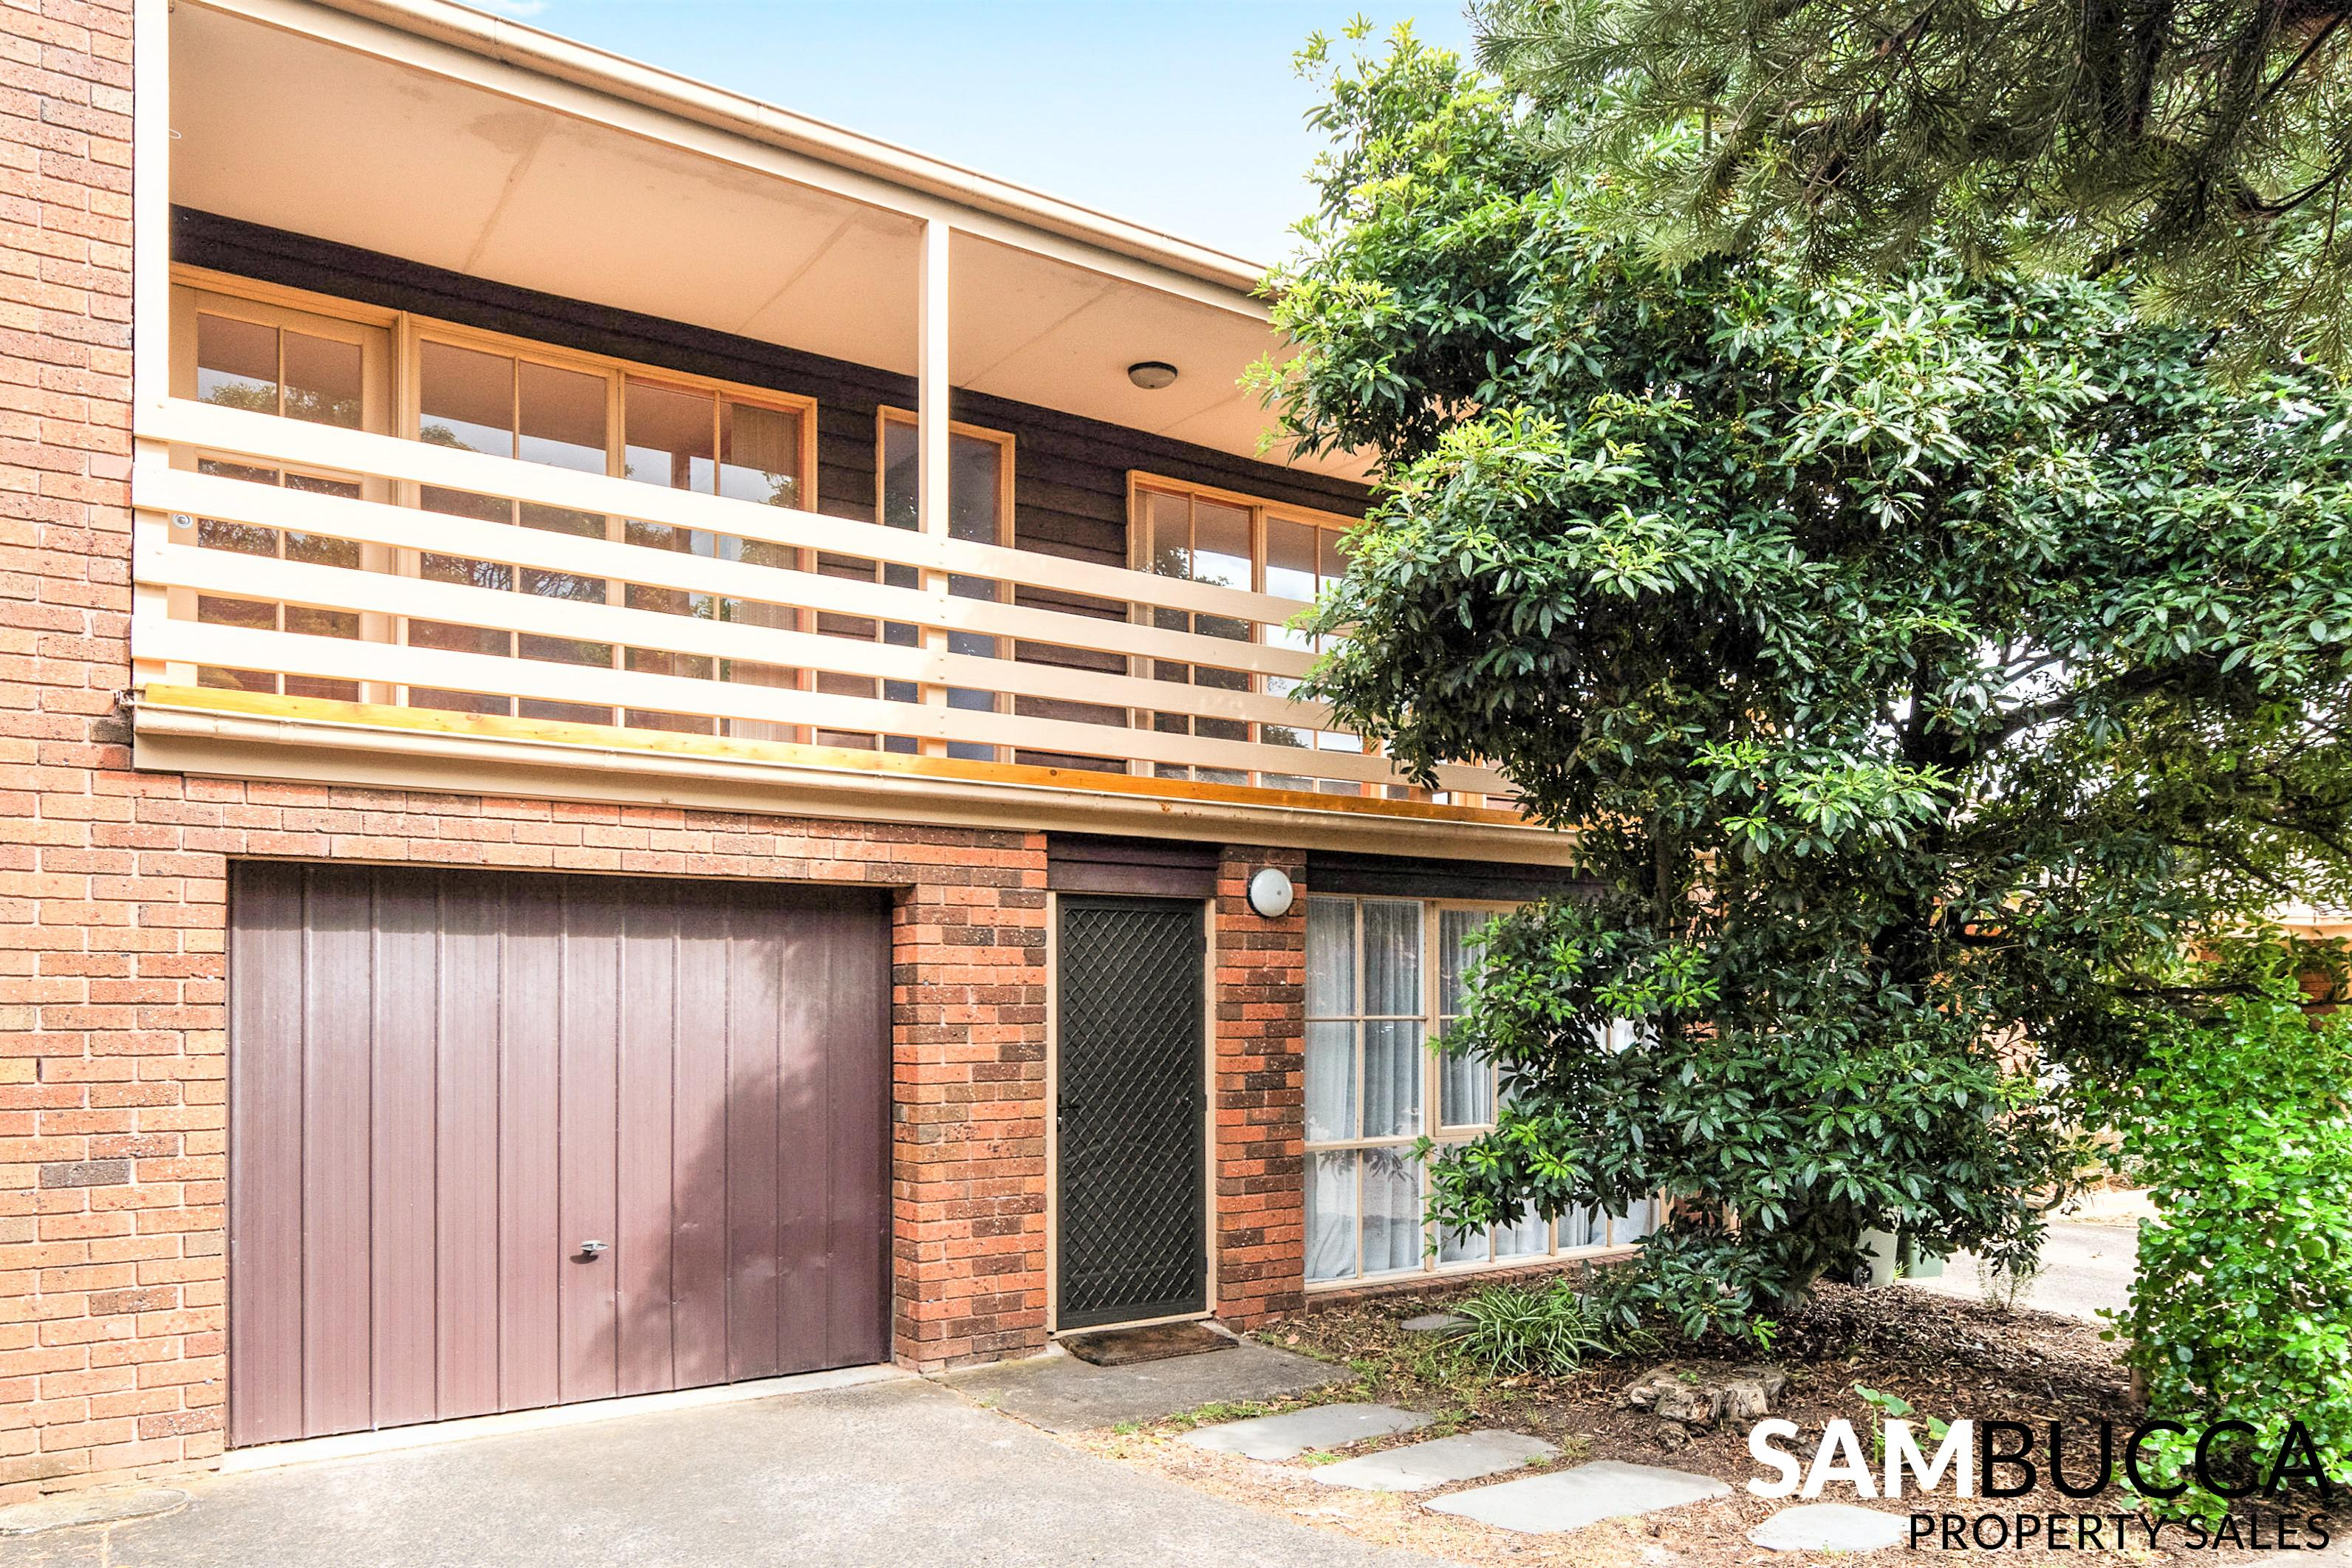 7/13 Wisewould Avenue, SEAFORD, VIC, 3198 - Image